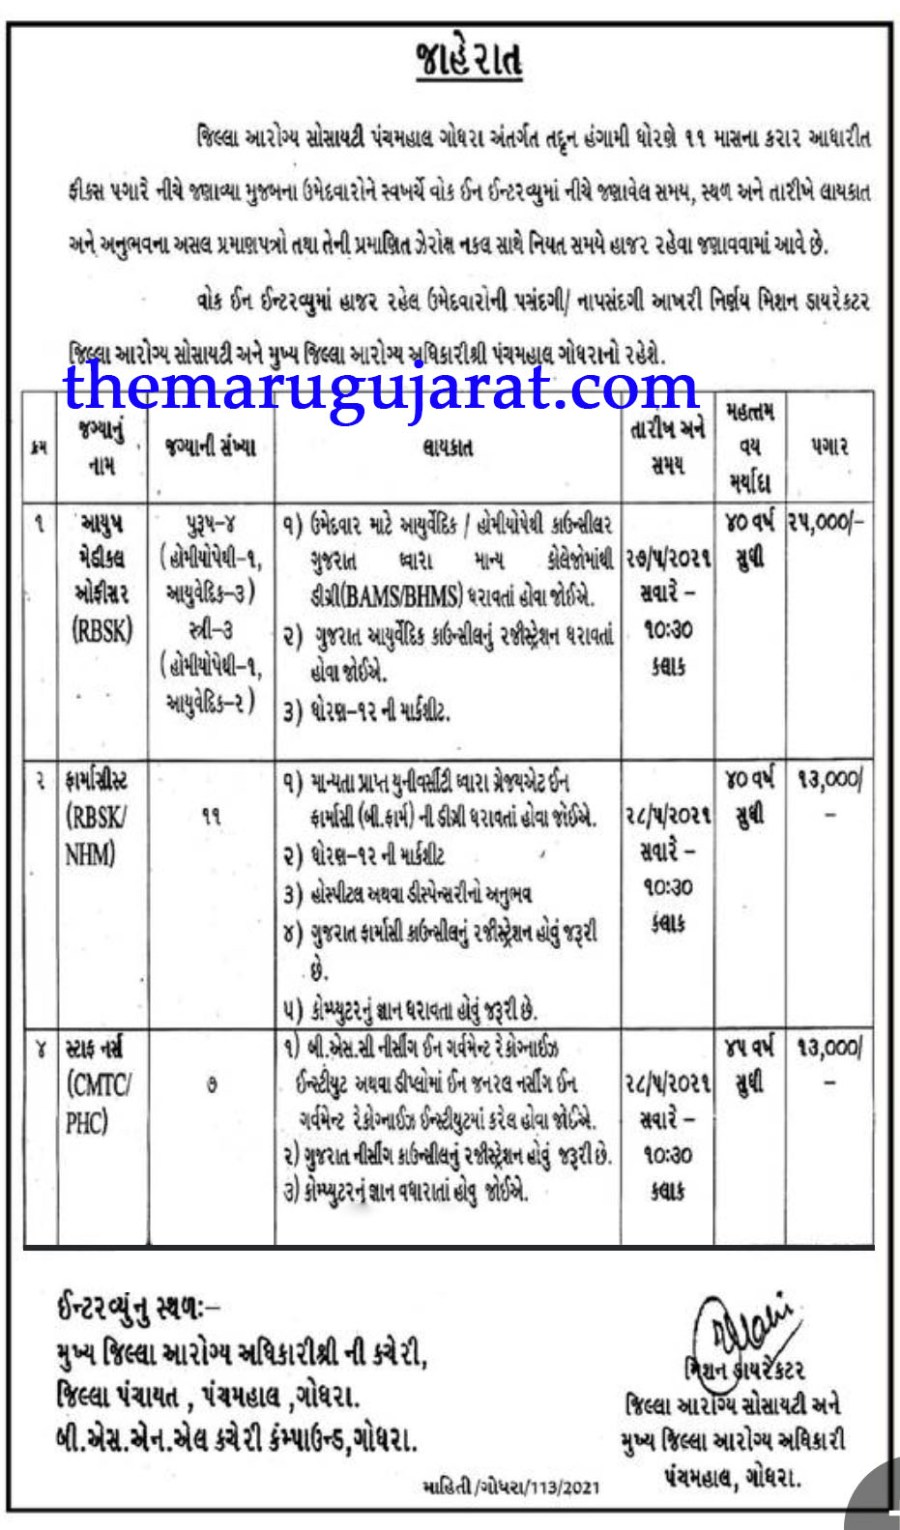 DHS Panchmahal Recruitment For Ayush Medical Officer, Pharmacist & Other Posts 2021